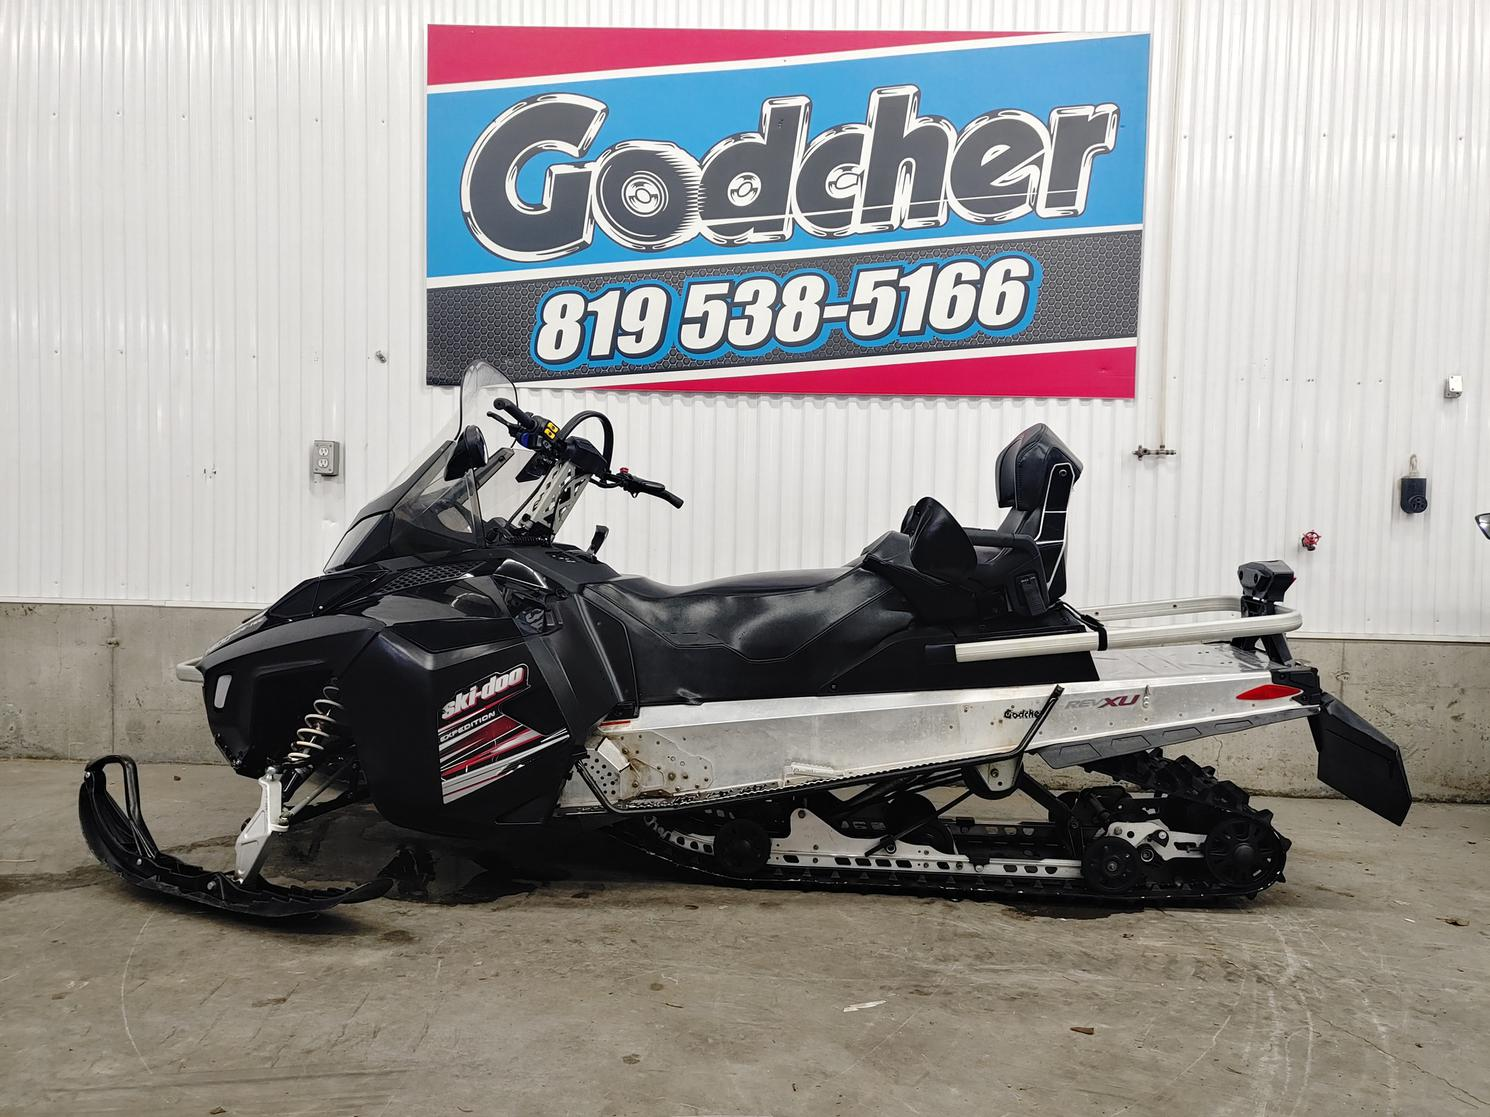 2011 Ski-Doo Expedition 600 E-Tech